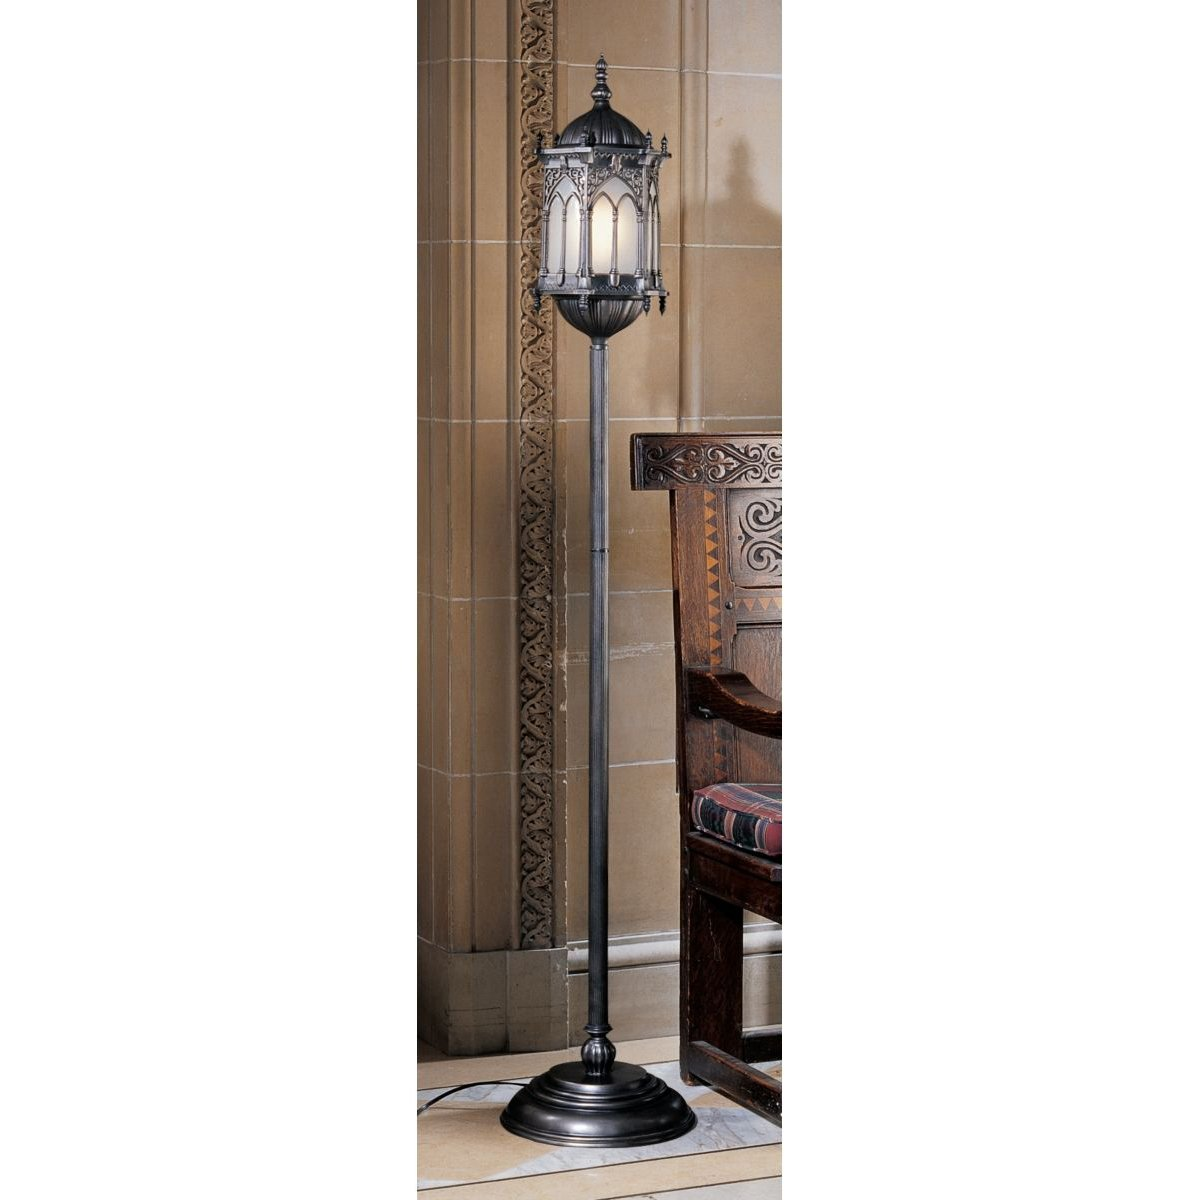 Amazon design toscano aberdeen manor gothic lantern floor lamp amazon design toscano aberdeen manor gothic lantern floor lamp kitchen dining arubaitofo Gallery